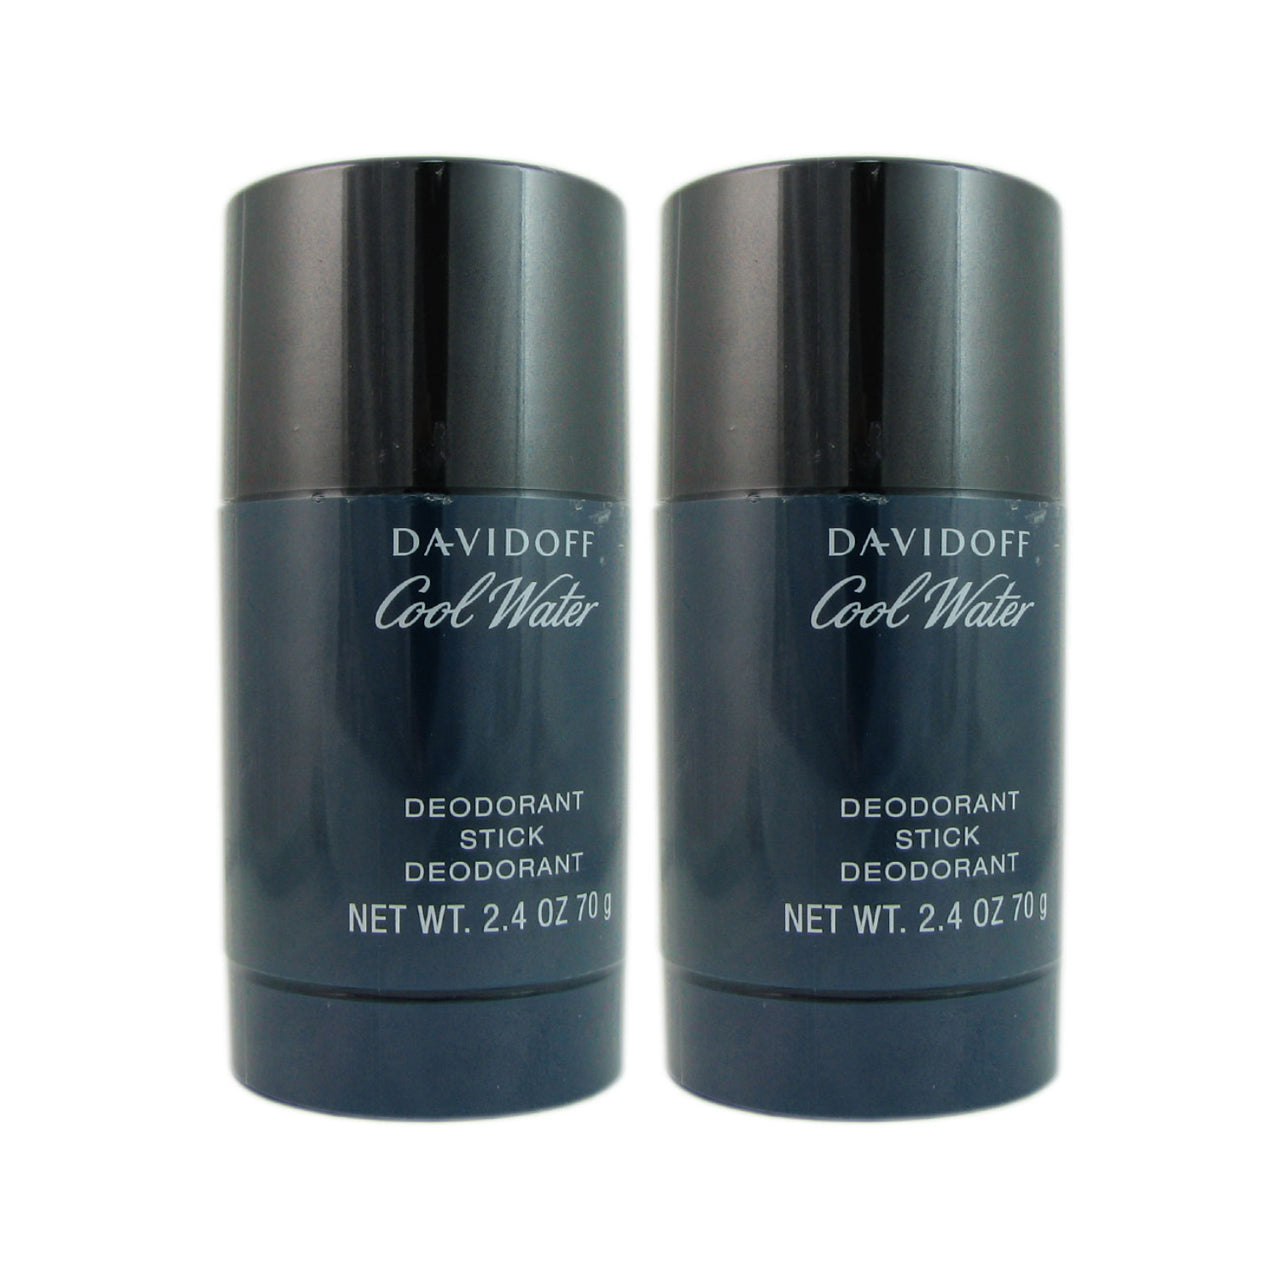 Davidoff Cool Water 2.4 oz Deodorant Stick 2 Pack